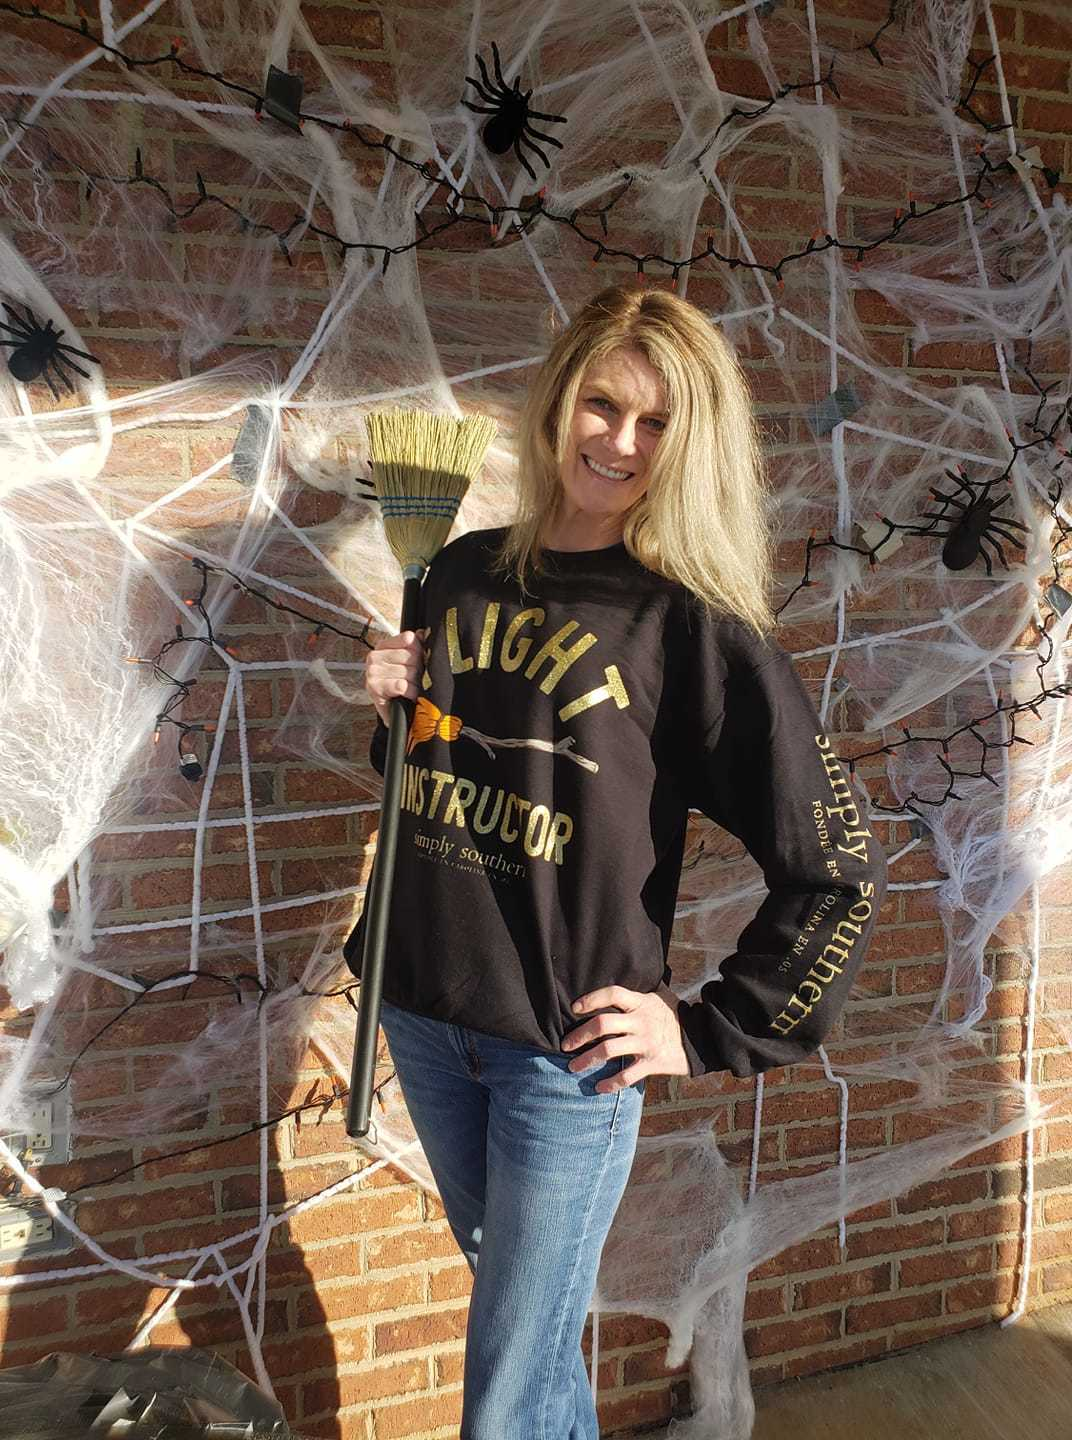 Get your Spooky on with Simply Southern🎃🧙♀️ Flight Instructor 🧹sweatshirt now in stock in our Williamston location. Warm and comfy for those Fall🍂 nights. thumbnail